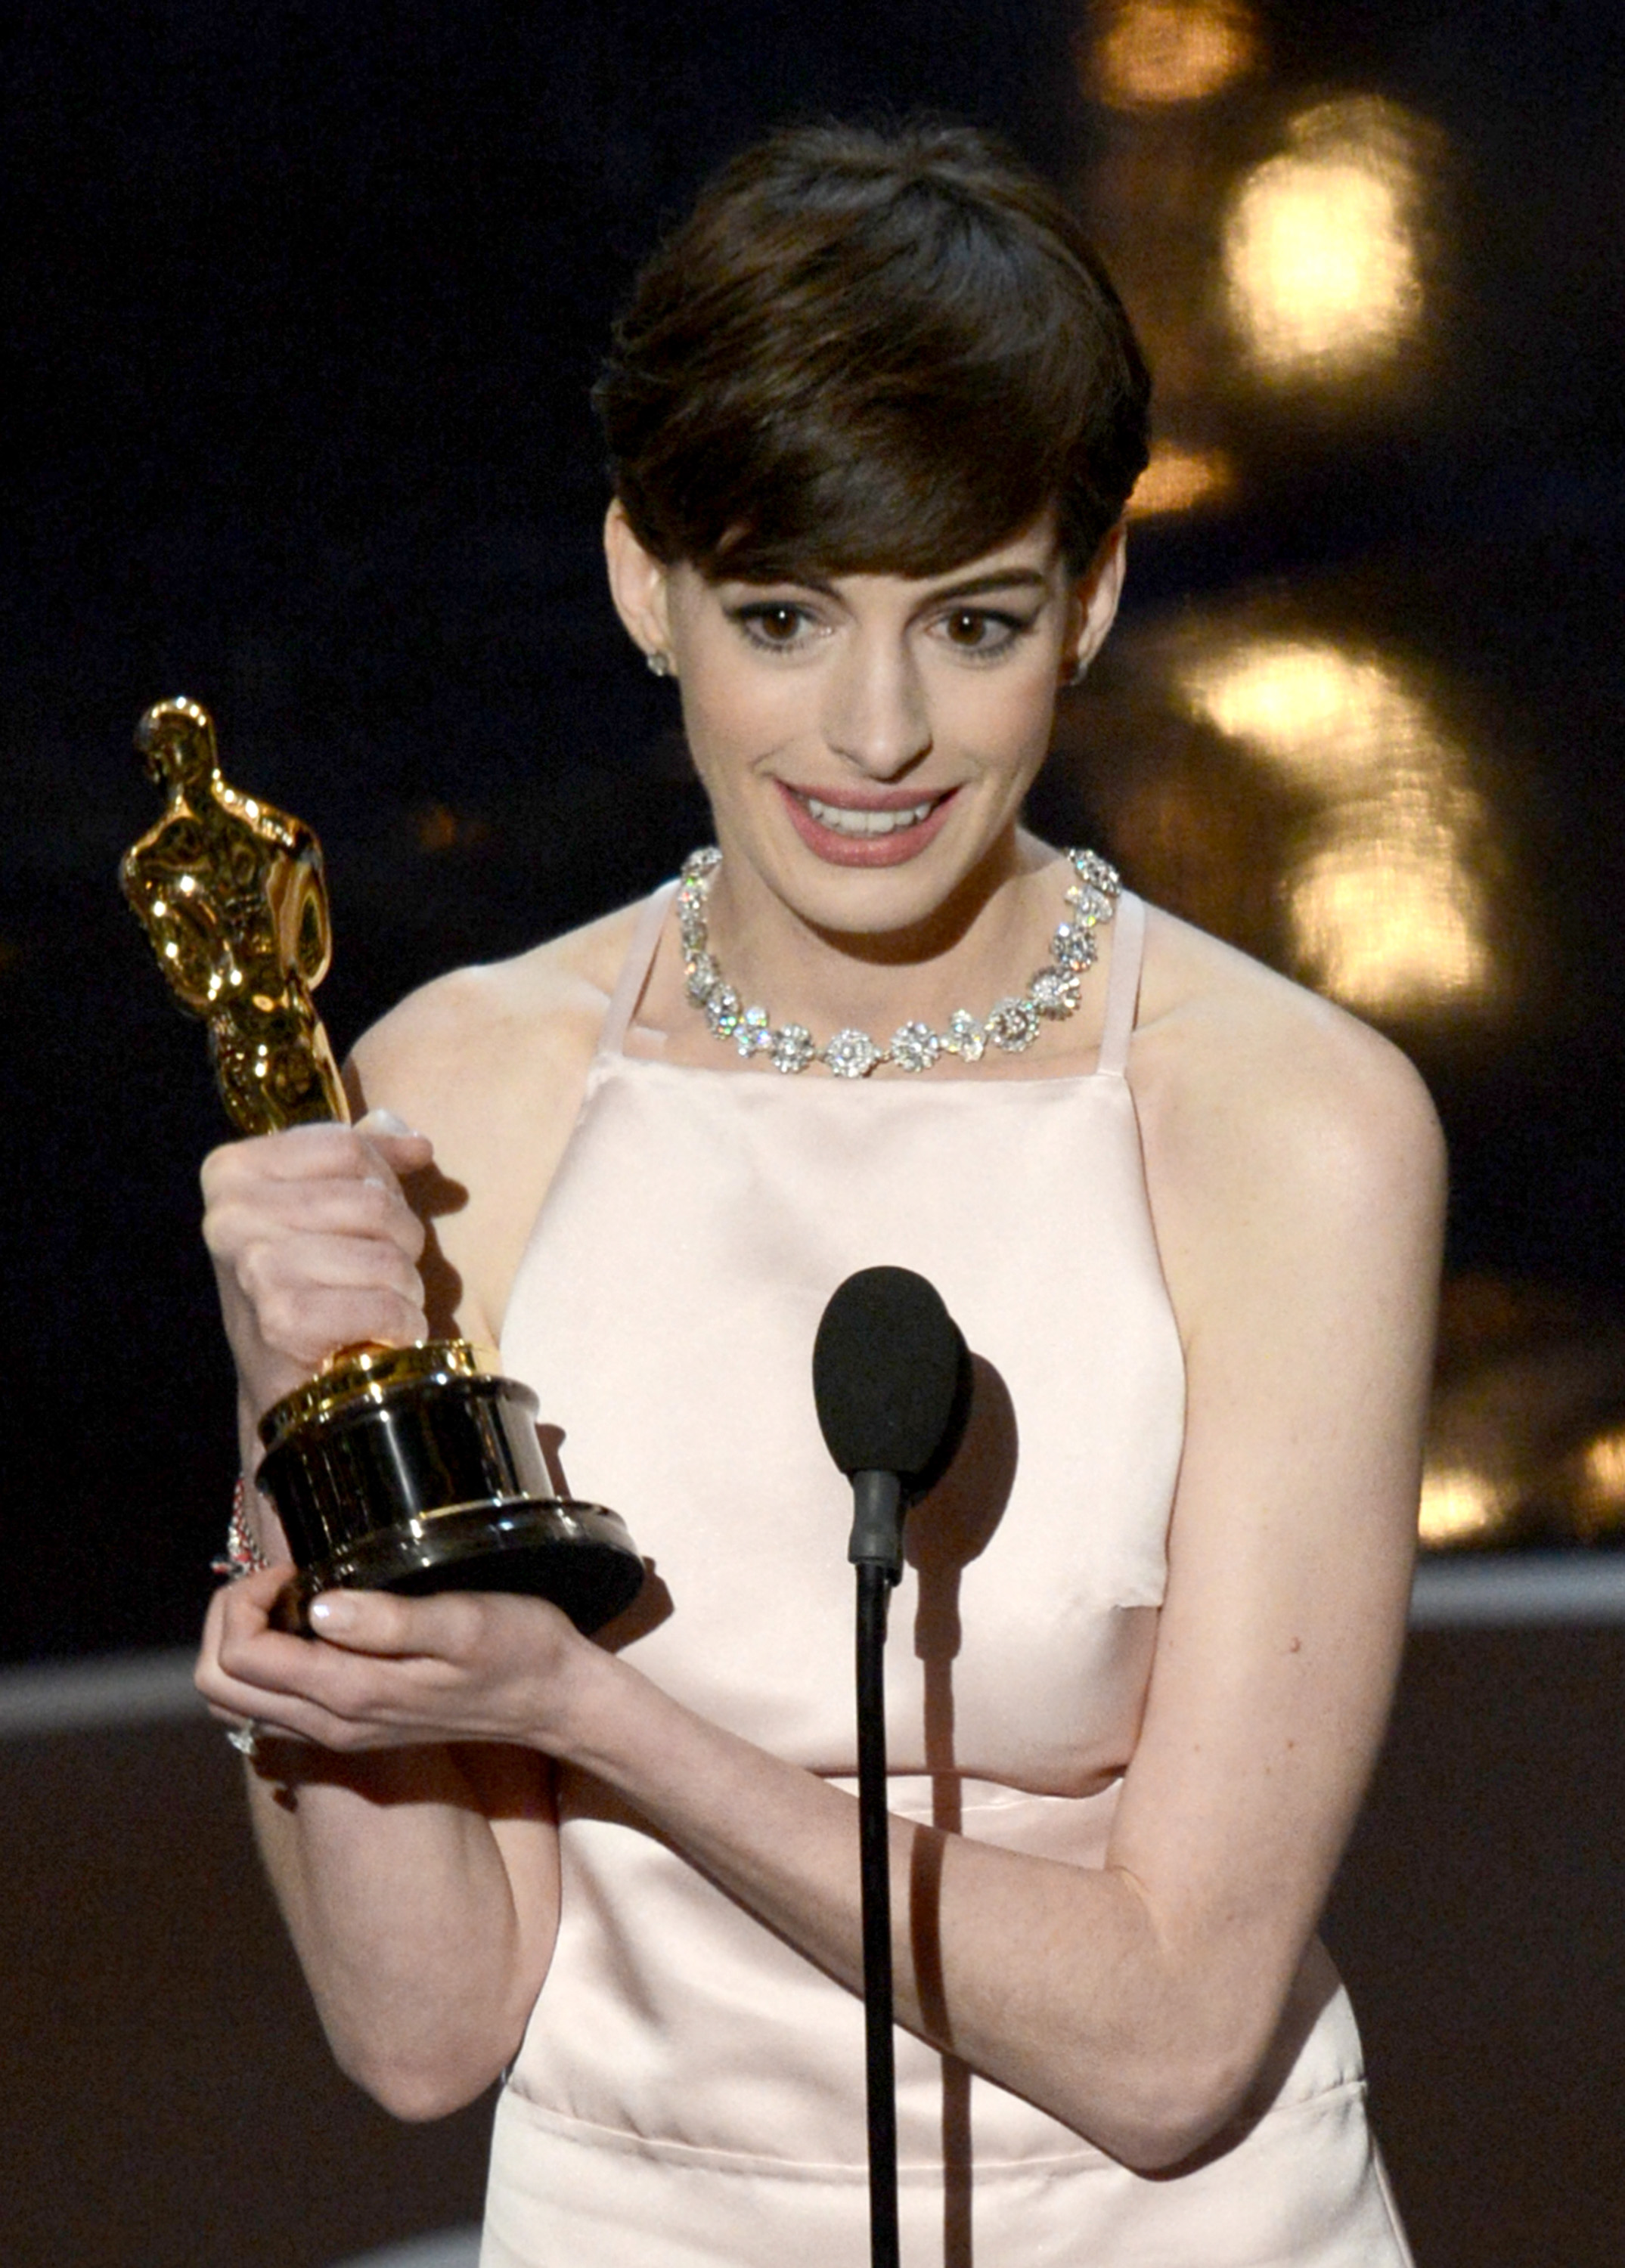 Actress Anne Hathaway accepts the Best Supporting Actress award for 'Les Miserables' onstage during the Oscars held at the Dolby Theatre on February 24, 2013 in Hollywood, California.